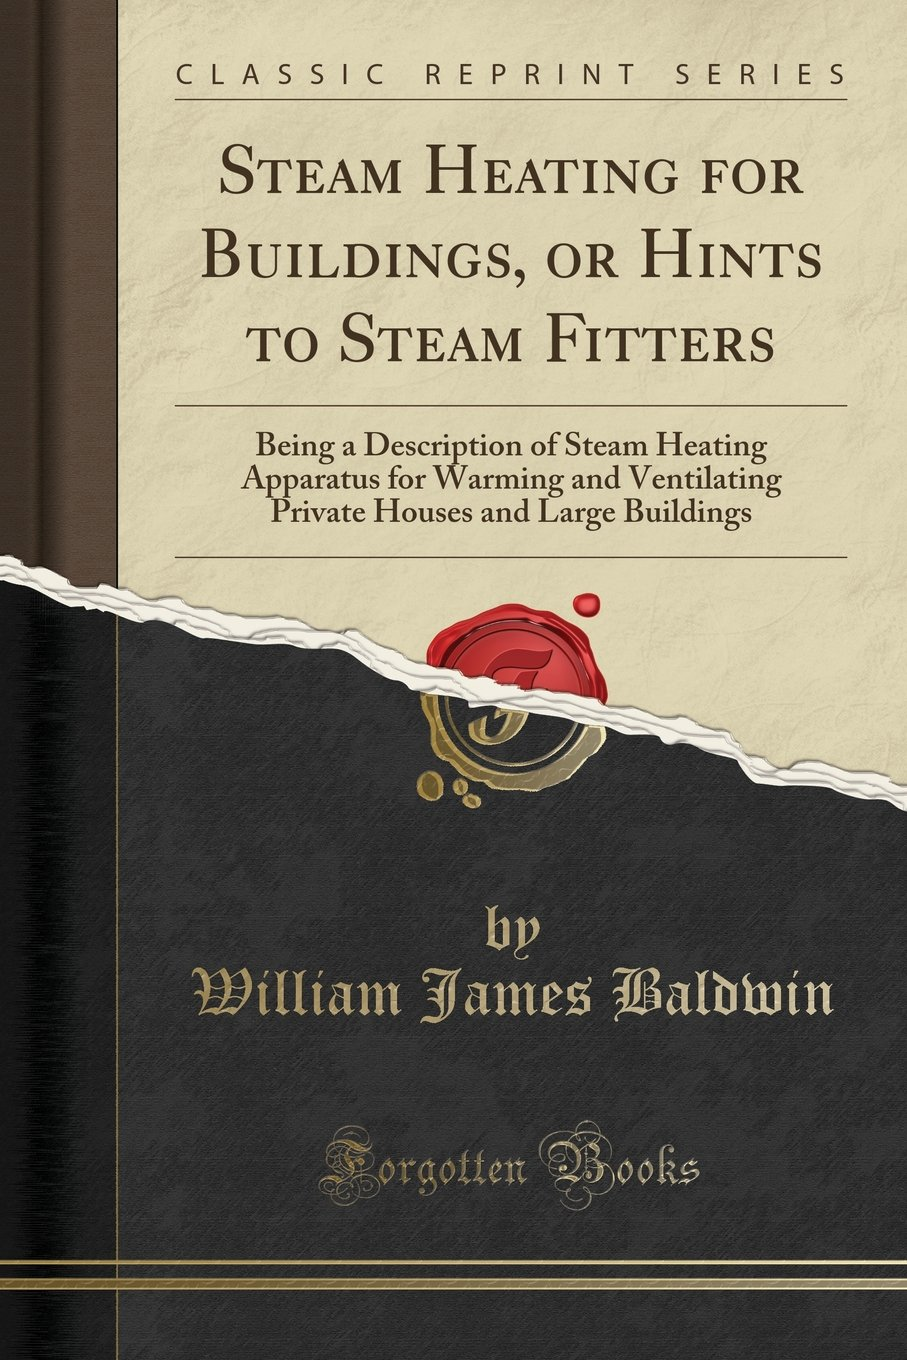 Steam Heating for Buildings, or Hints to Steam Fitters: Being a Description of Steam Heating Apparatus for Warming and Ventilating Private Houses and Large Buildings (Classic Reprint)